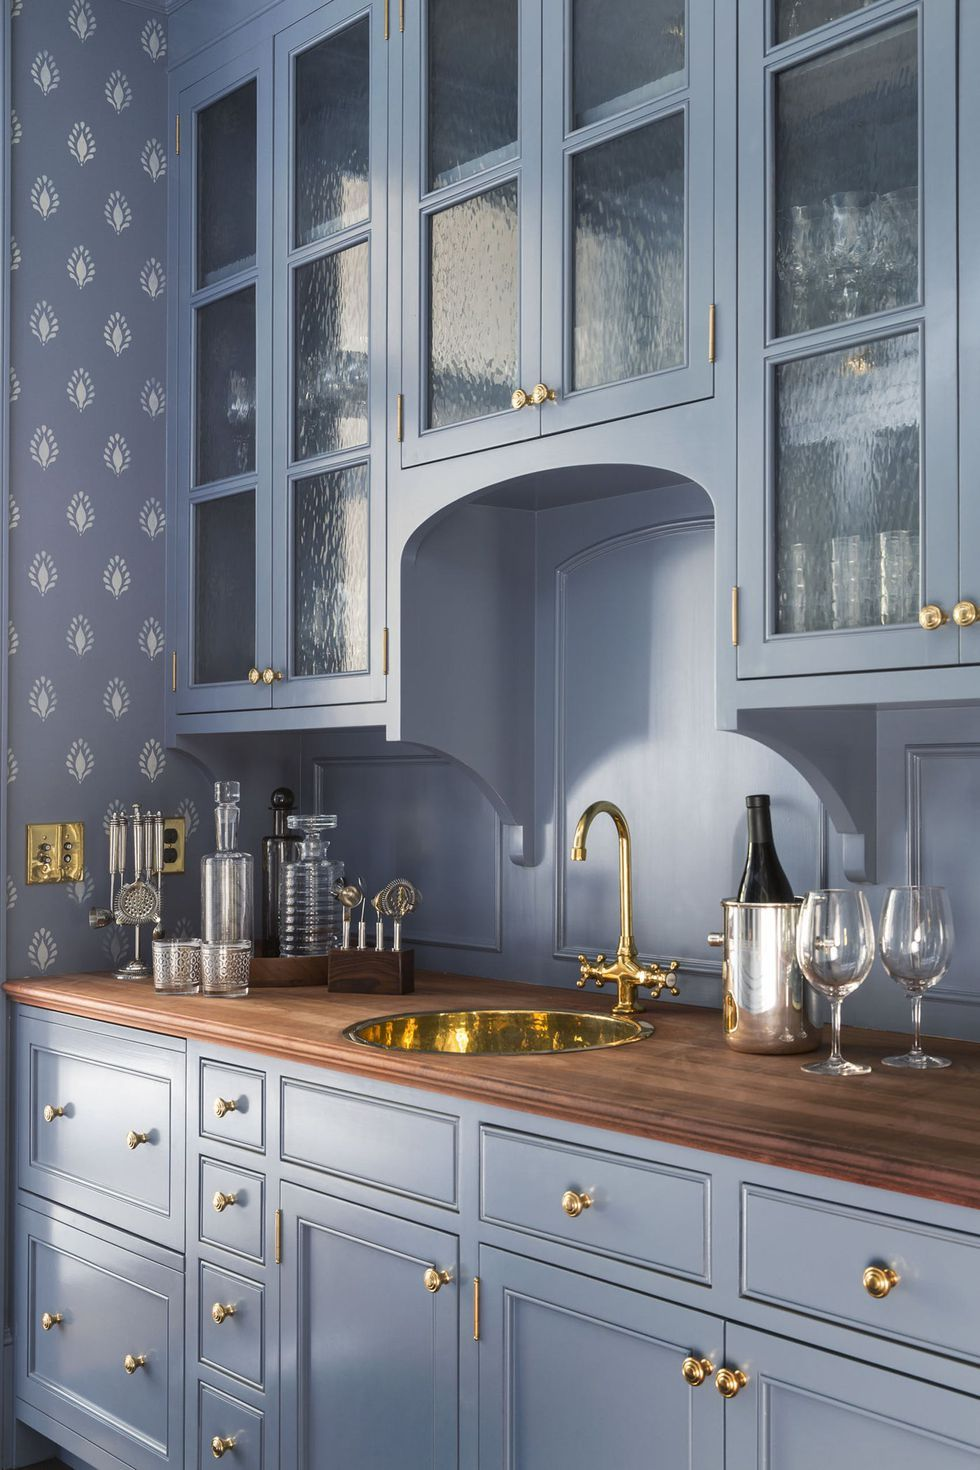 45 Functional Butler's Pantries With Endless Charm